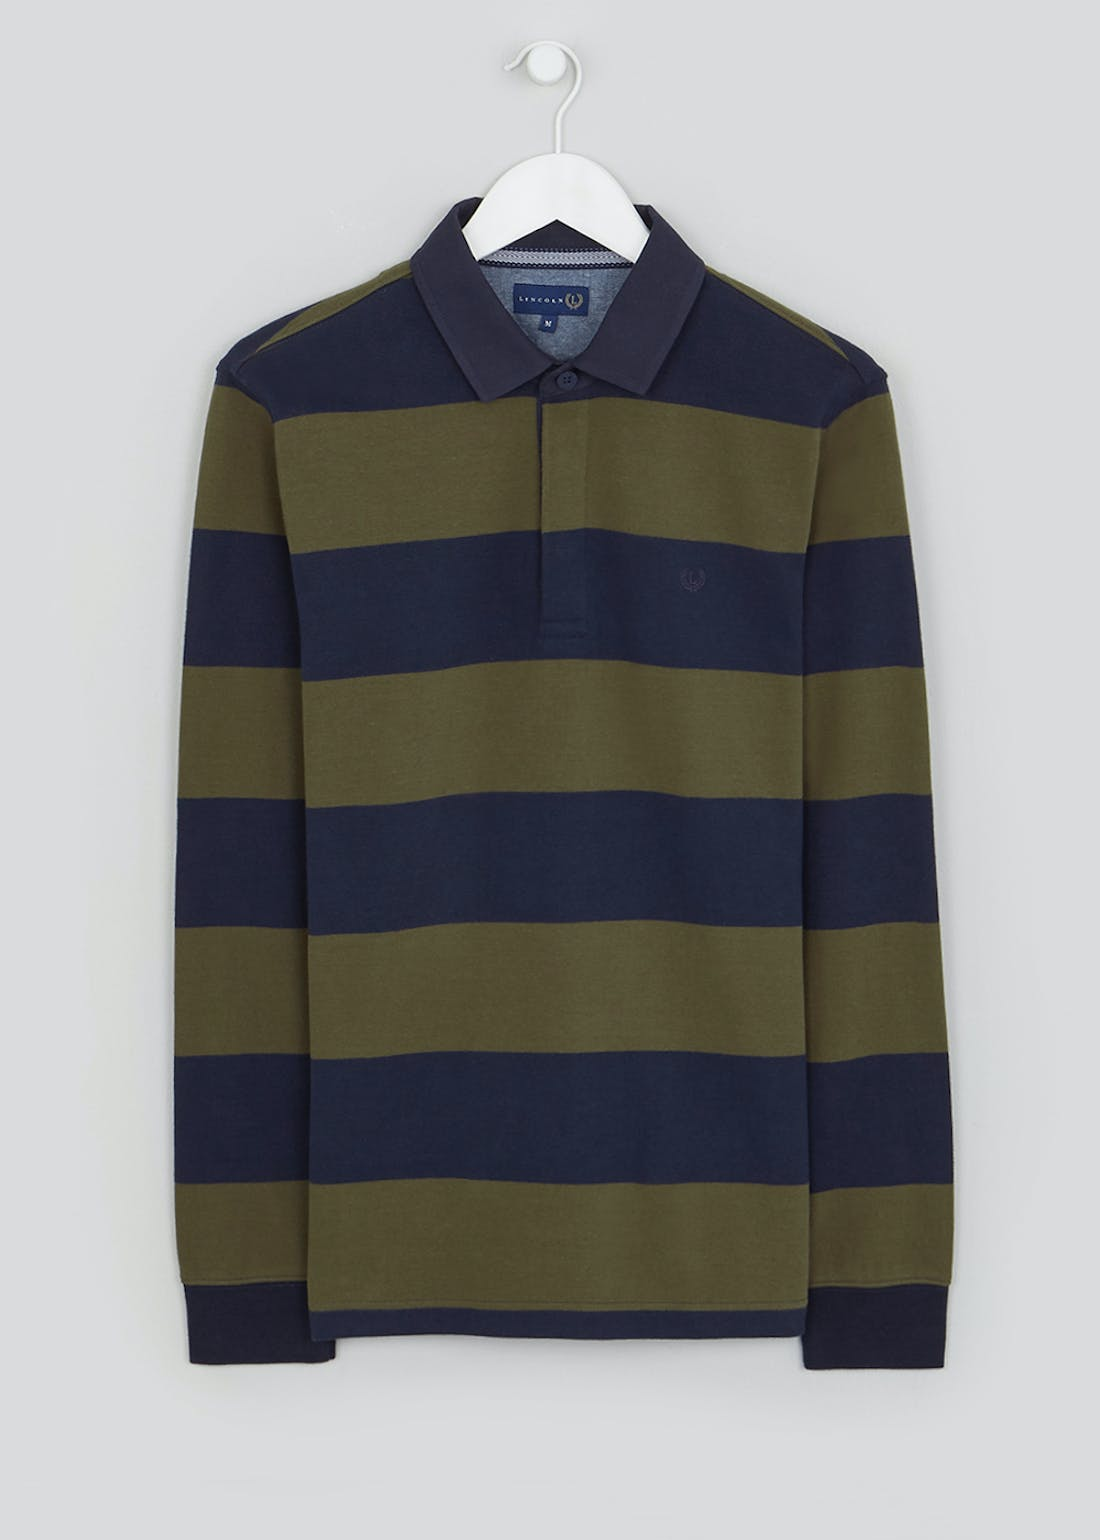 Lincoln Long Sleeve Rugby Top